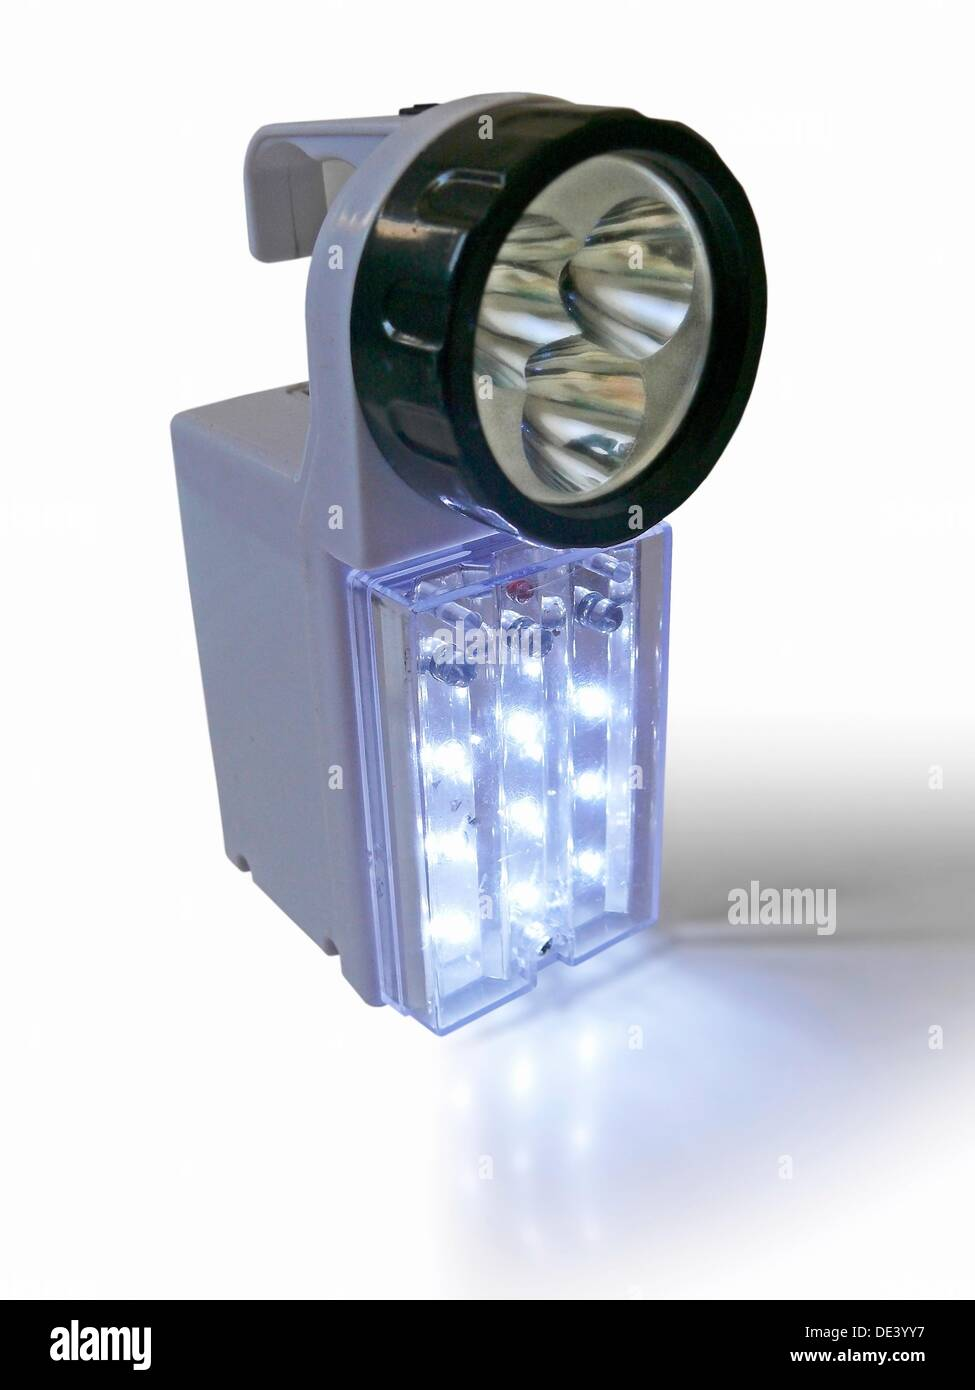 Rechargeable Torch with LED lights - Stock Image